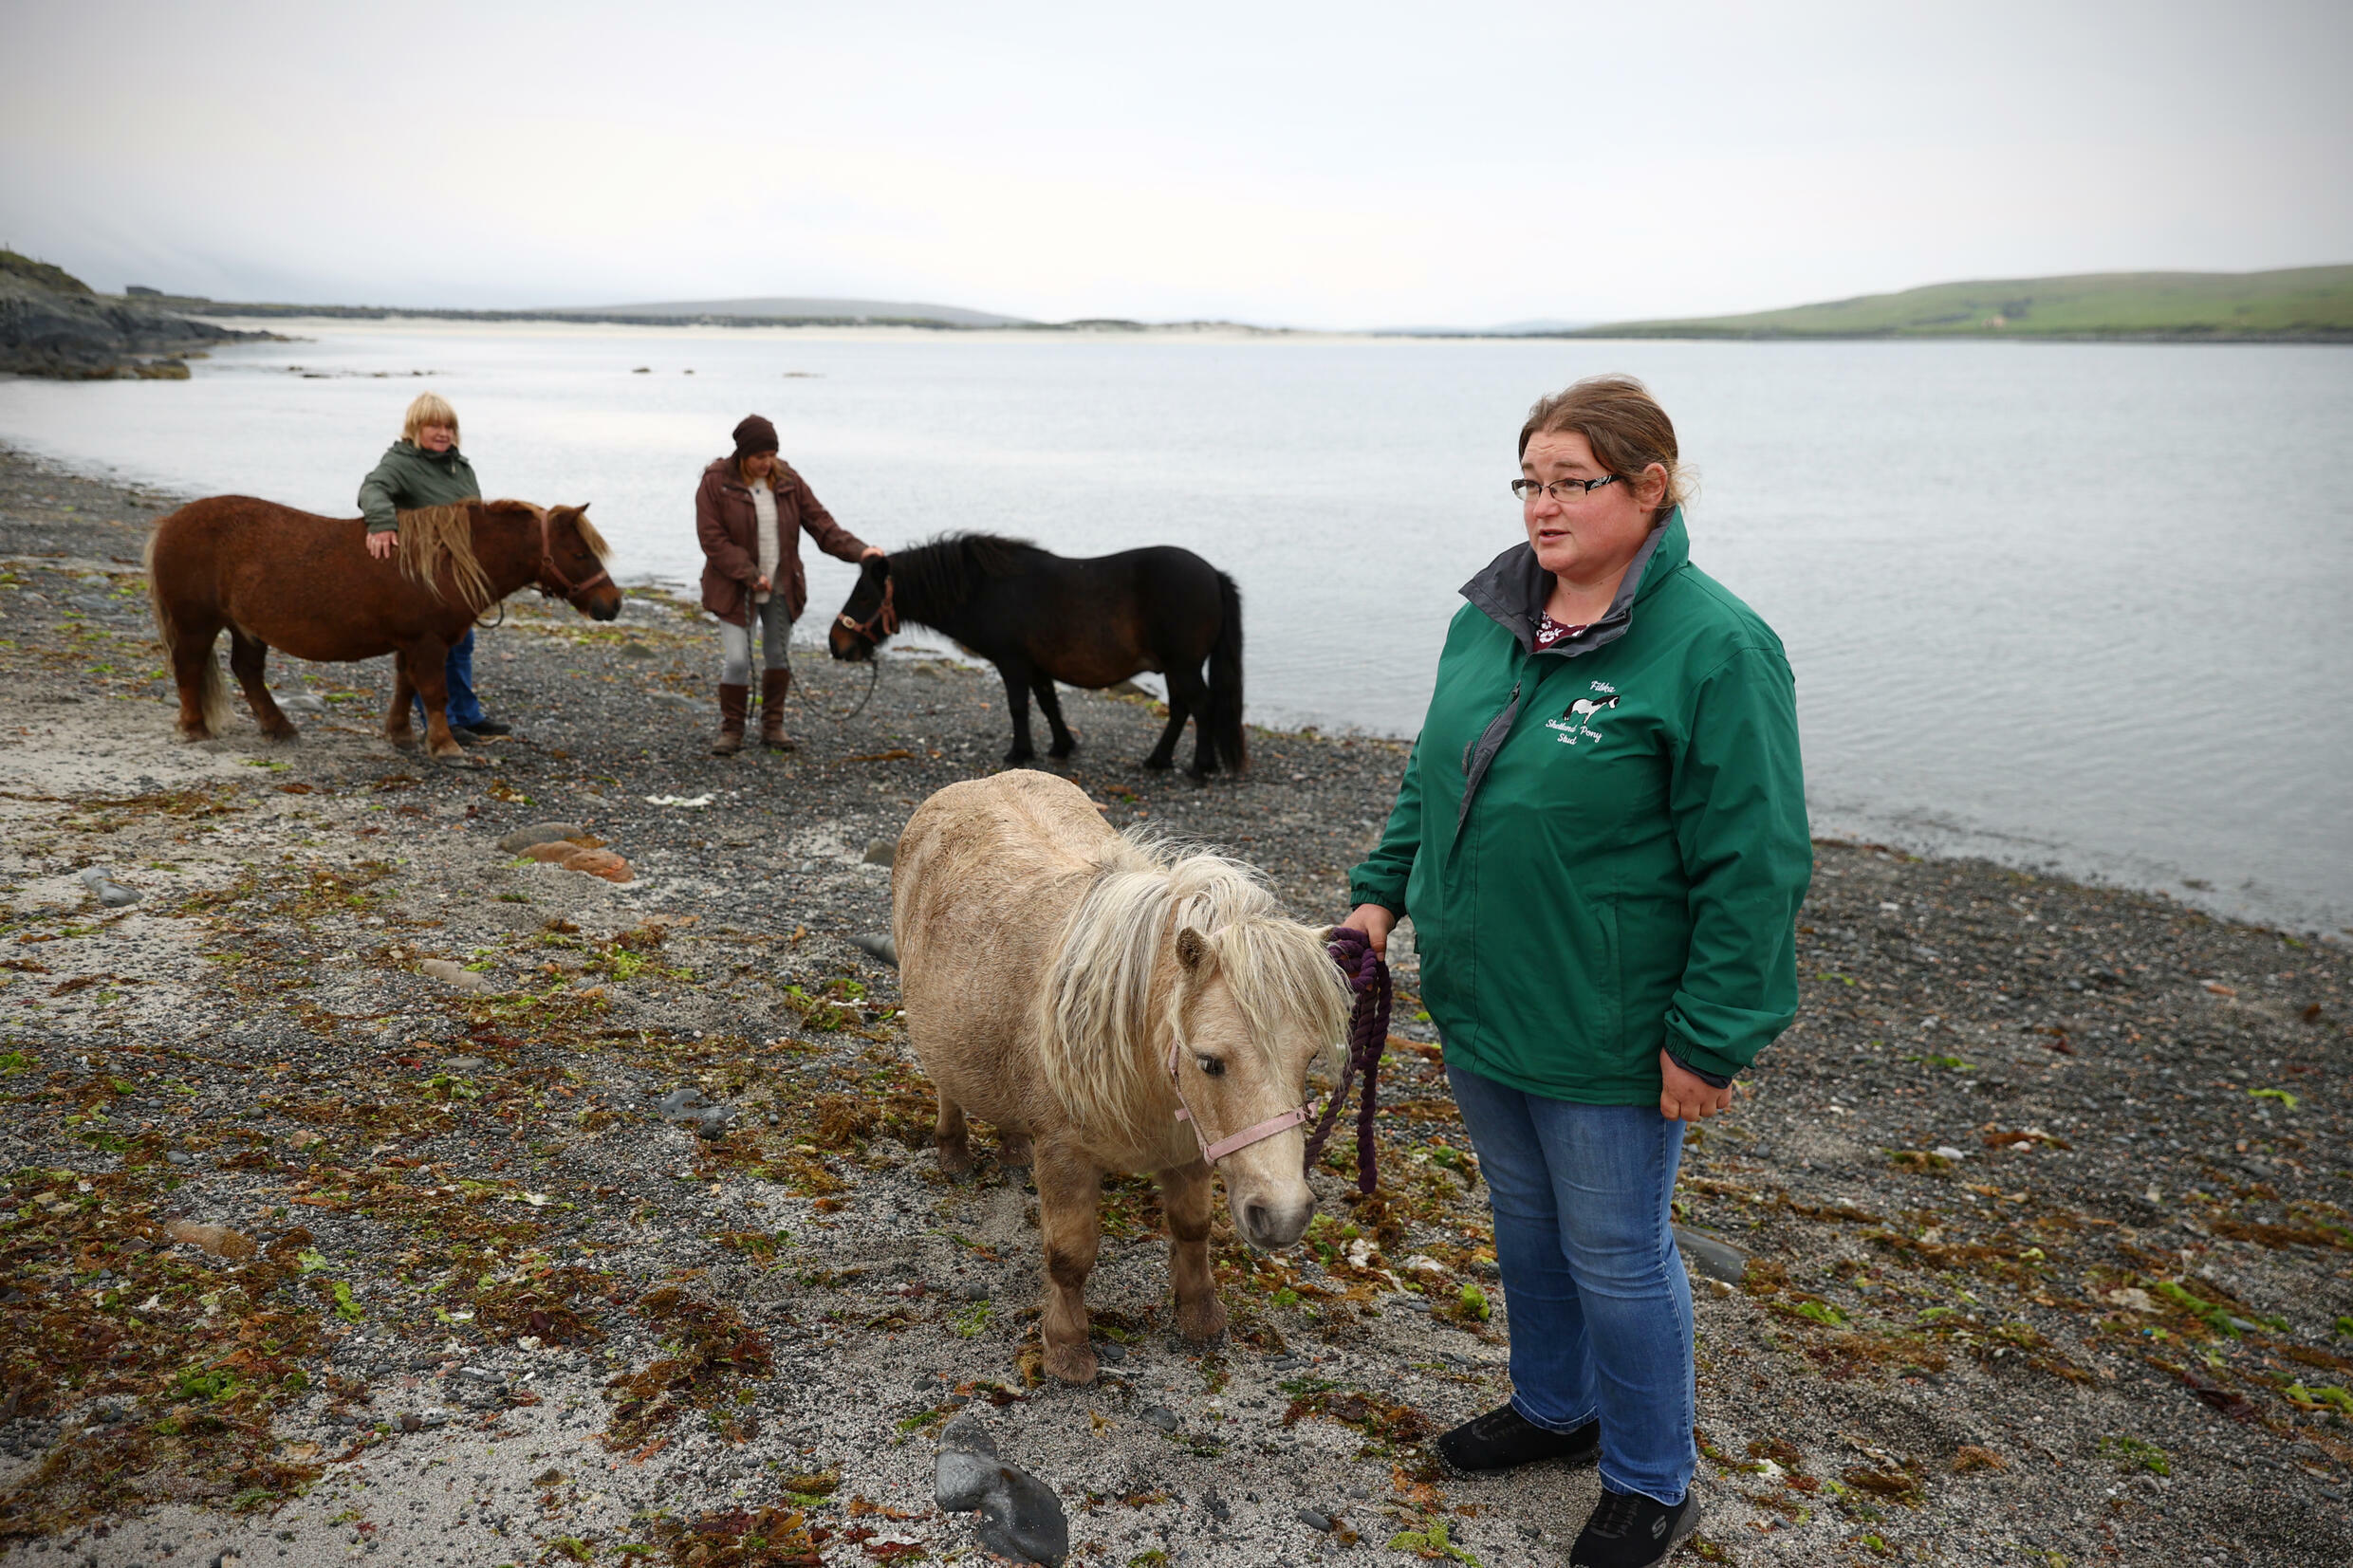 'A pony is a very nice way to spend your time,' says Sheena Anderson, chair of the Pony Breeders of Shetland Association